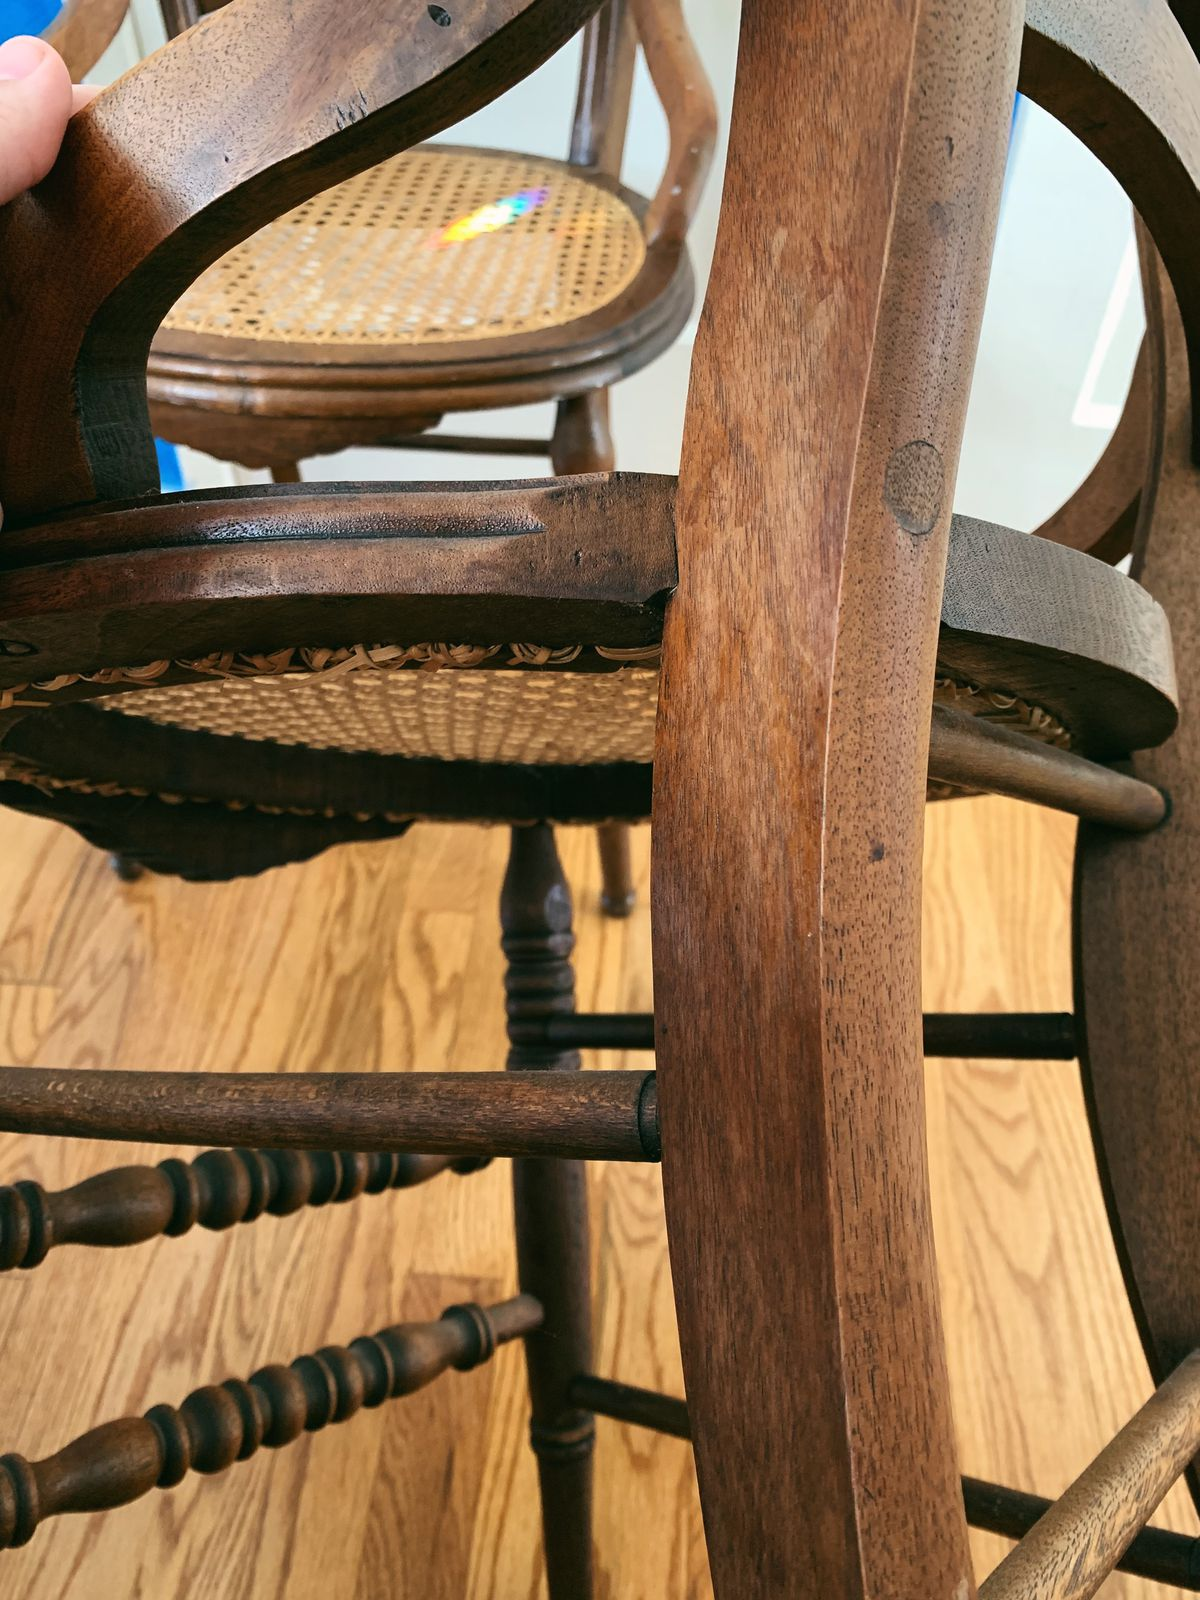 A close-up of a wooden chair, where you can better see the joints that hold it together.